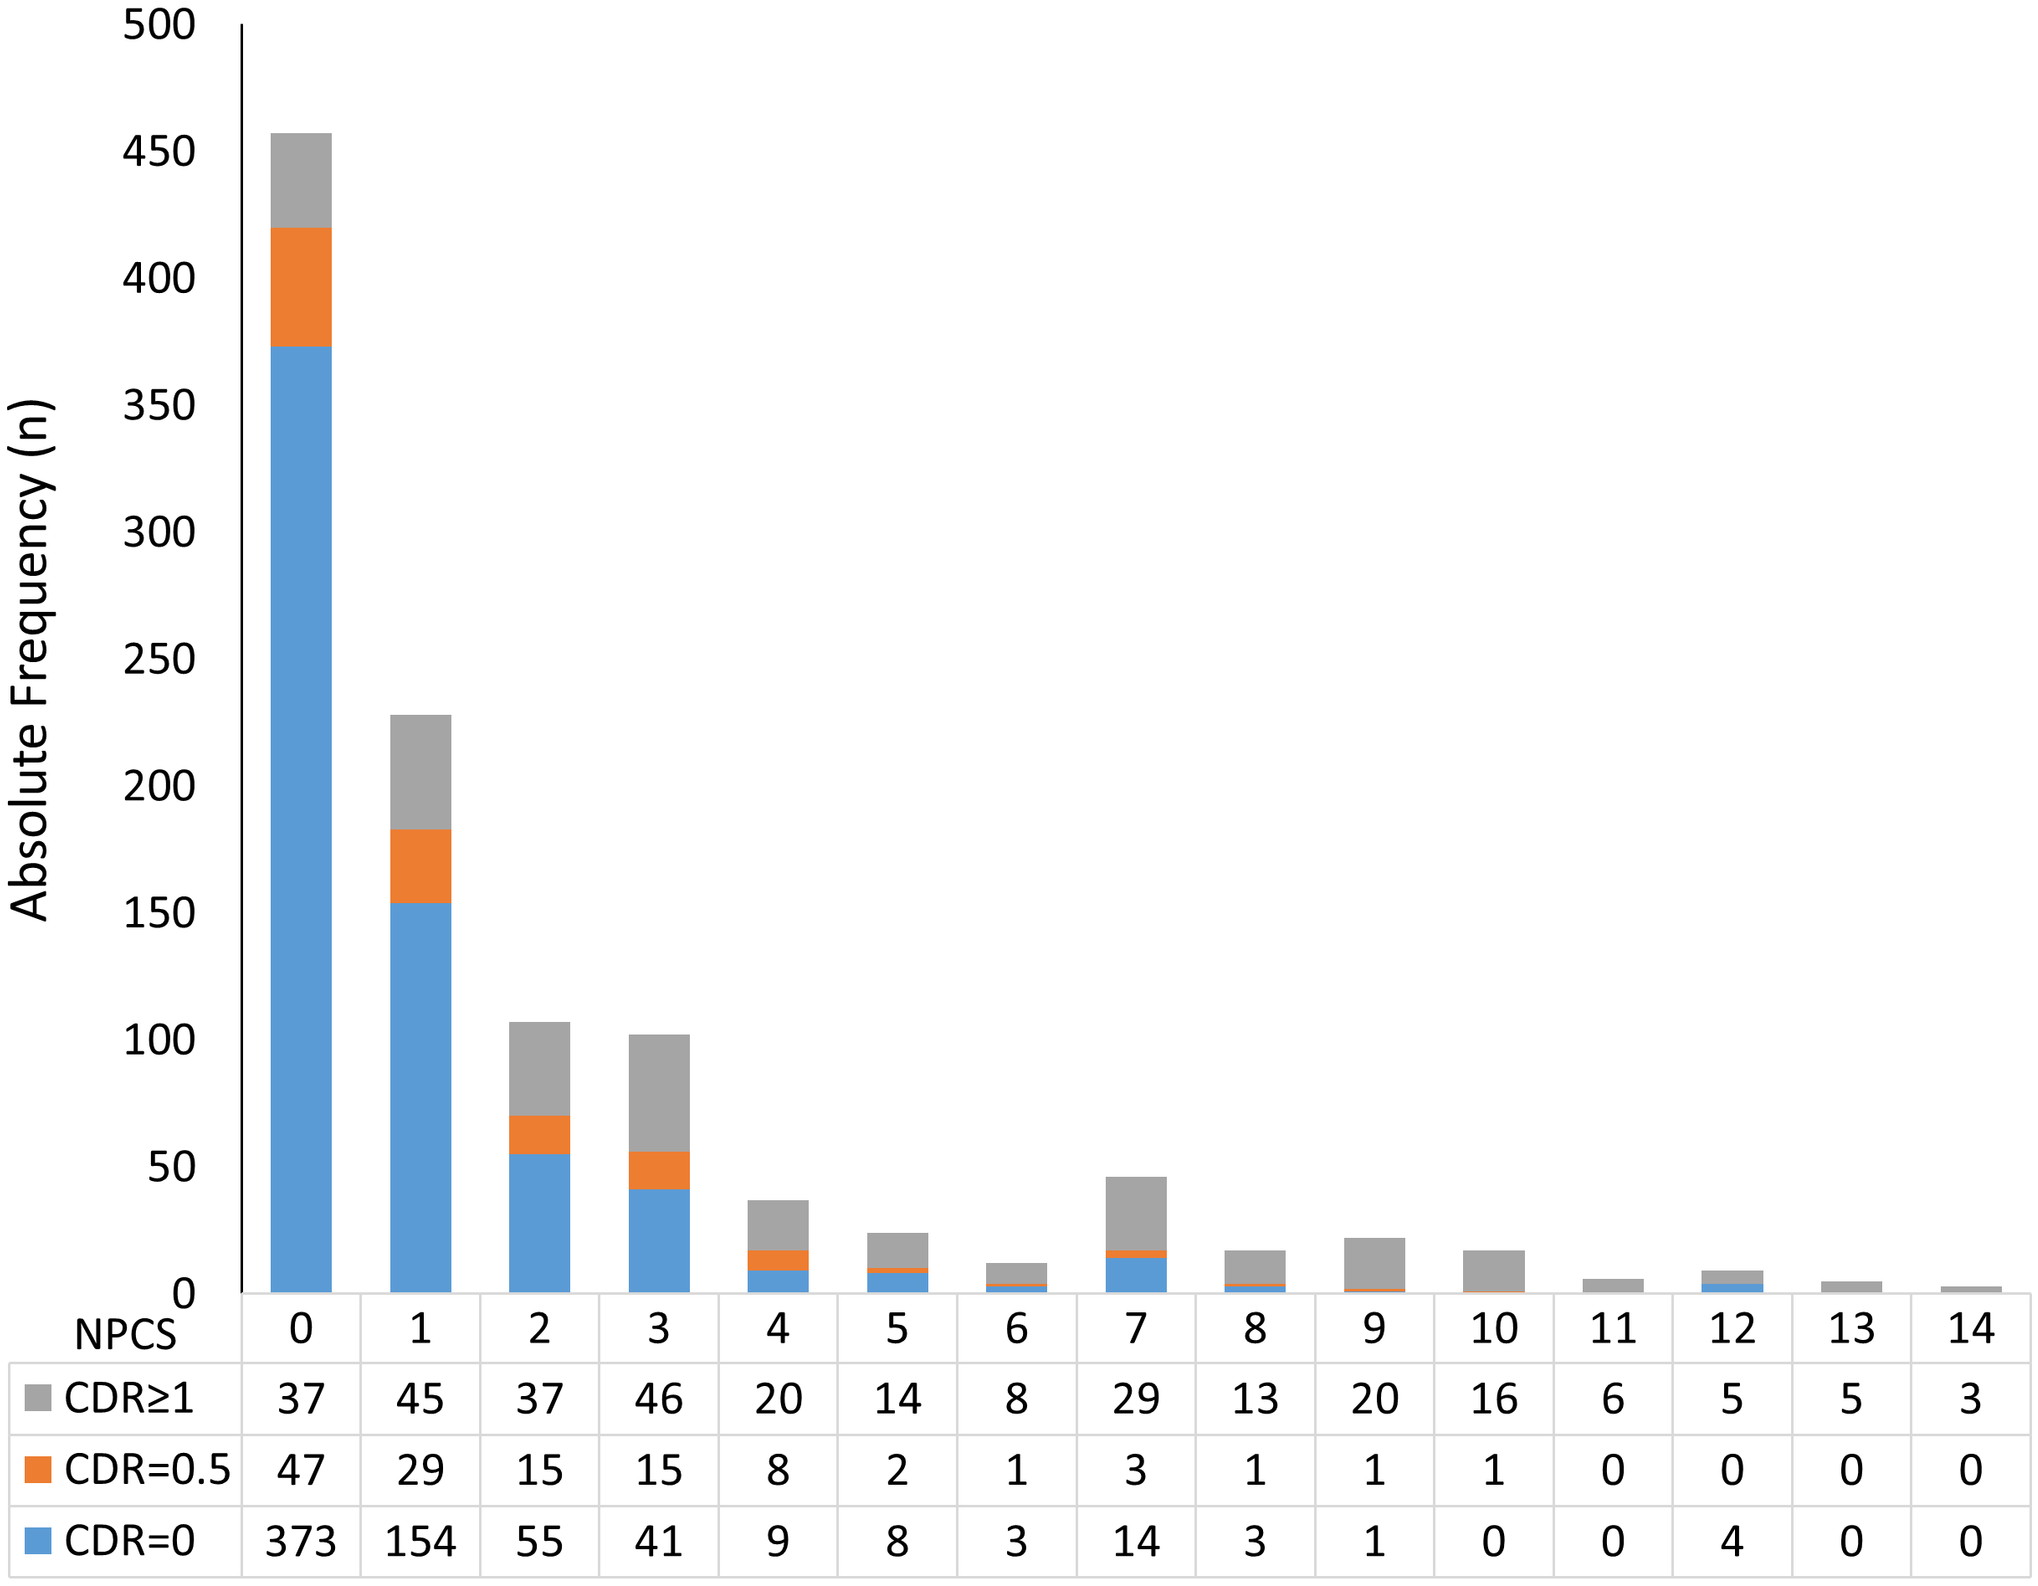 Number of participants in each stratum of the Neuropathological Comorbidity Score (NPCS) according to dementia status defined by the CDR scale (CDR = 0: No dementia; CDR = 0.5: Questionable dementia; CDR ≥ 1: Dementia).